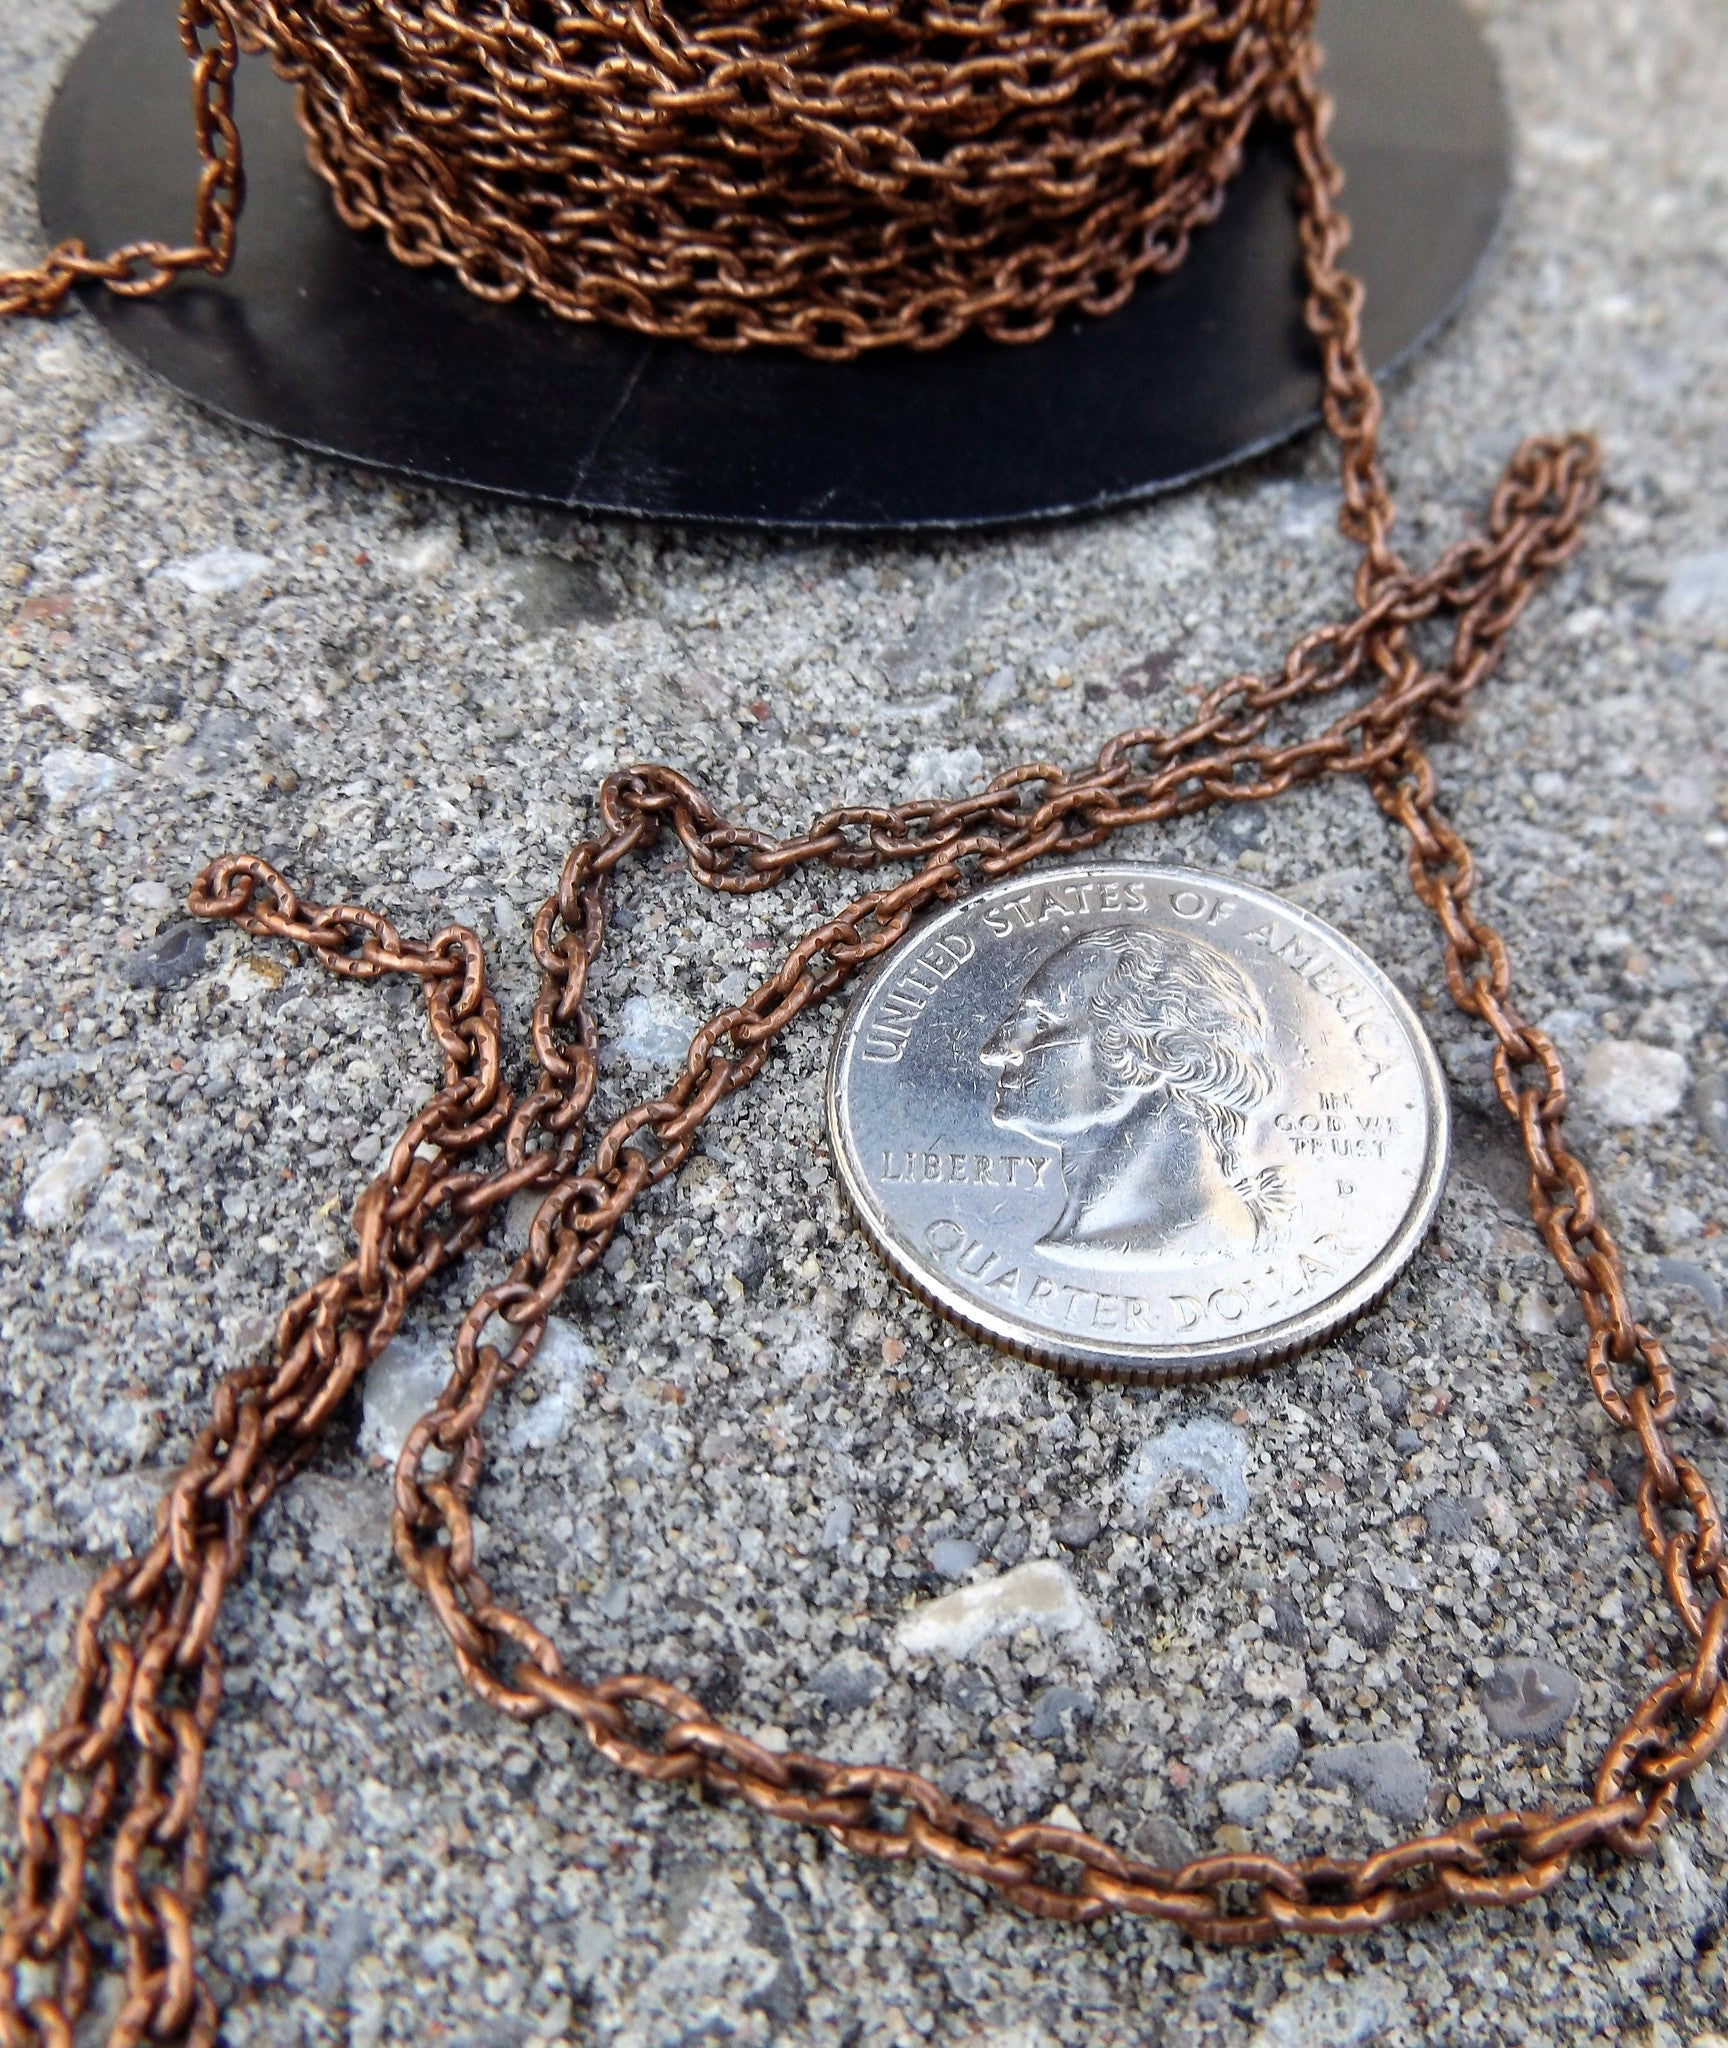 Stringing Materials Chain Mhai O Beads Electrical Current Perdiameter Of Wire In Other Words Copper Iron Antique Color Ch06 4x3mm Fancy Oval Links Sold